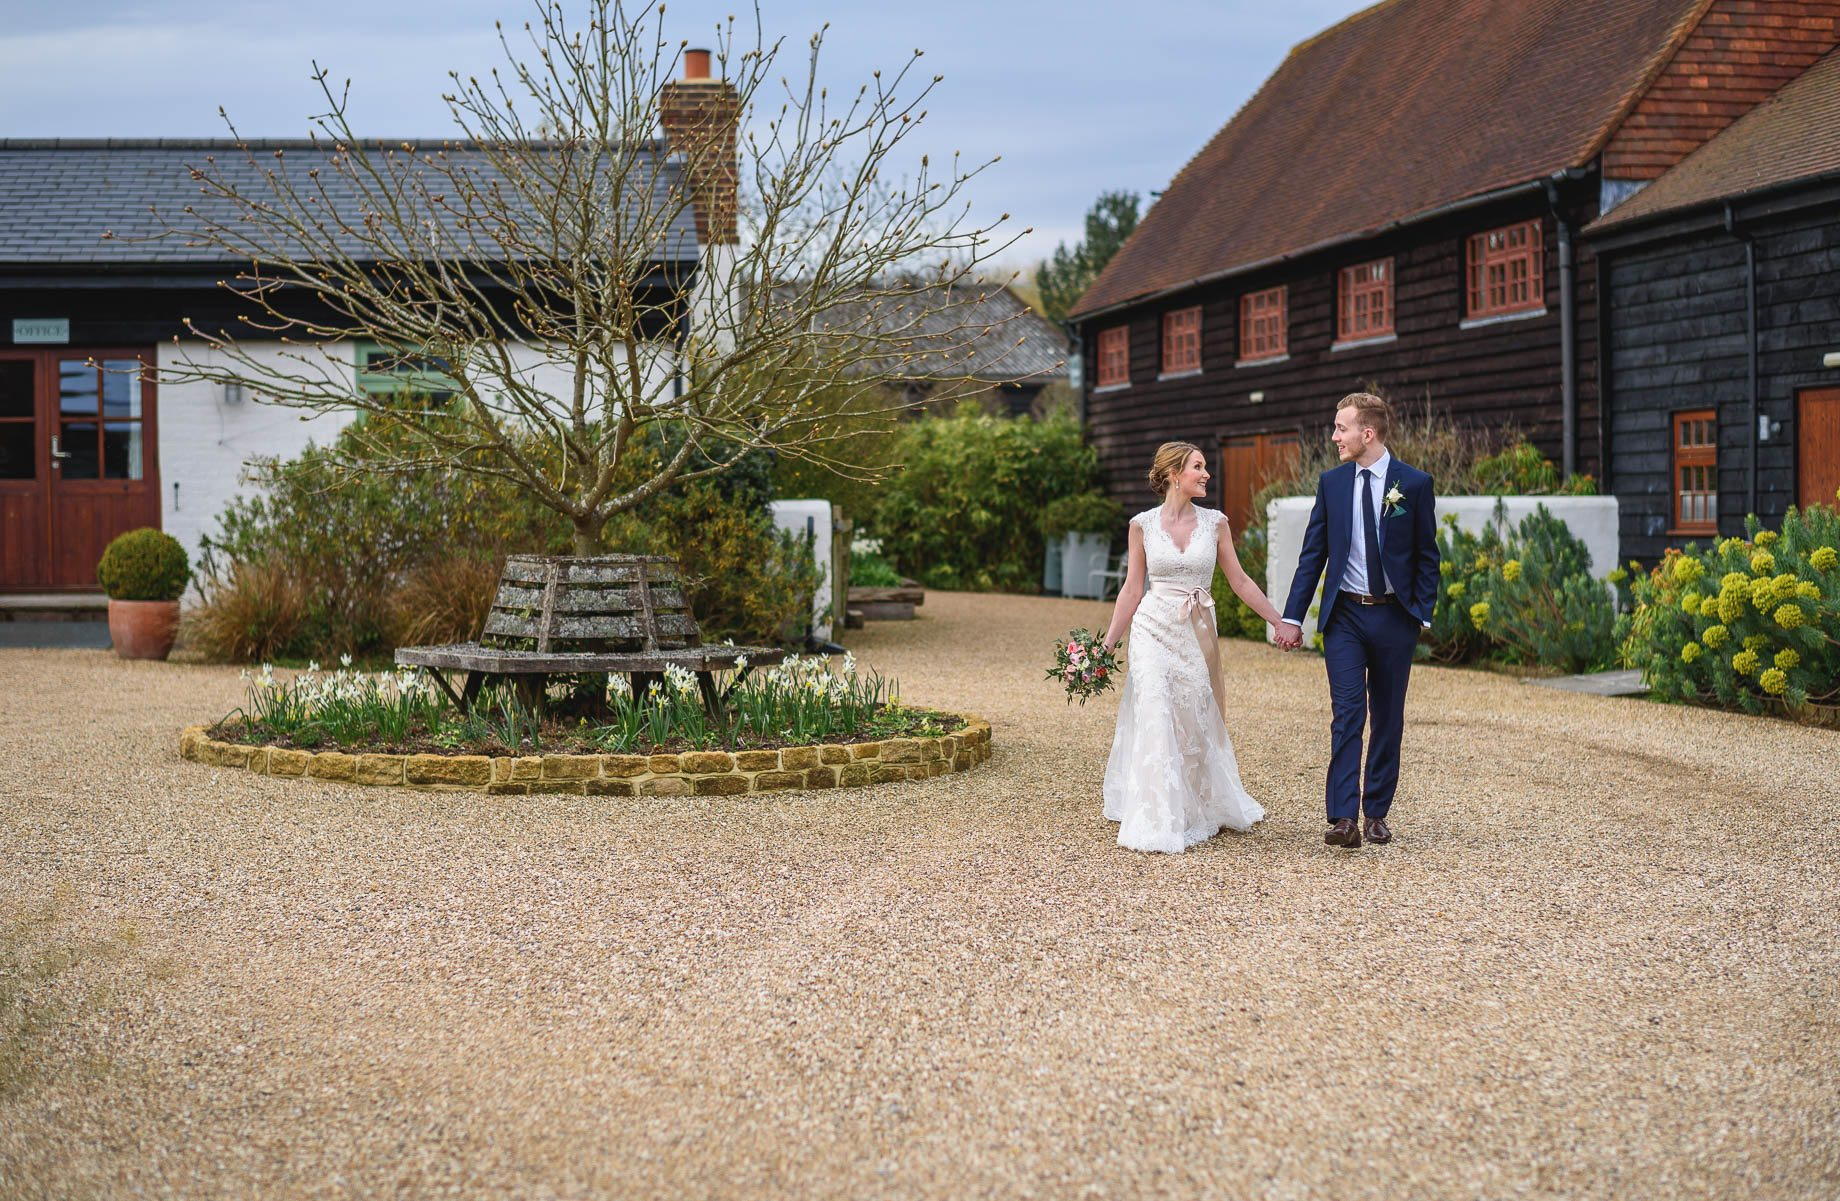 Surrey Wedding Photography by Guy Collier - Becca and James (63 of 145)